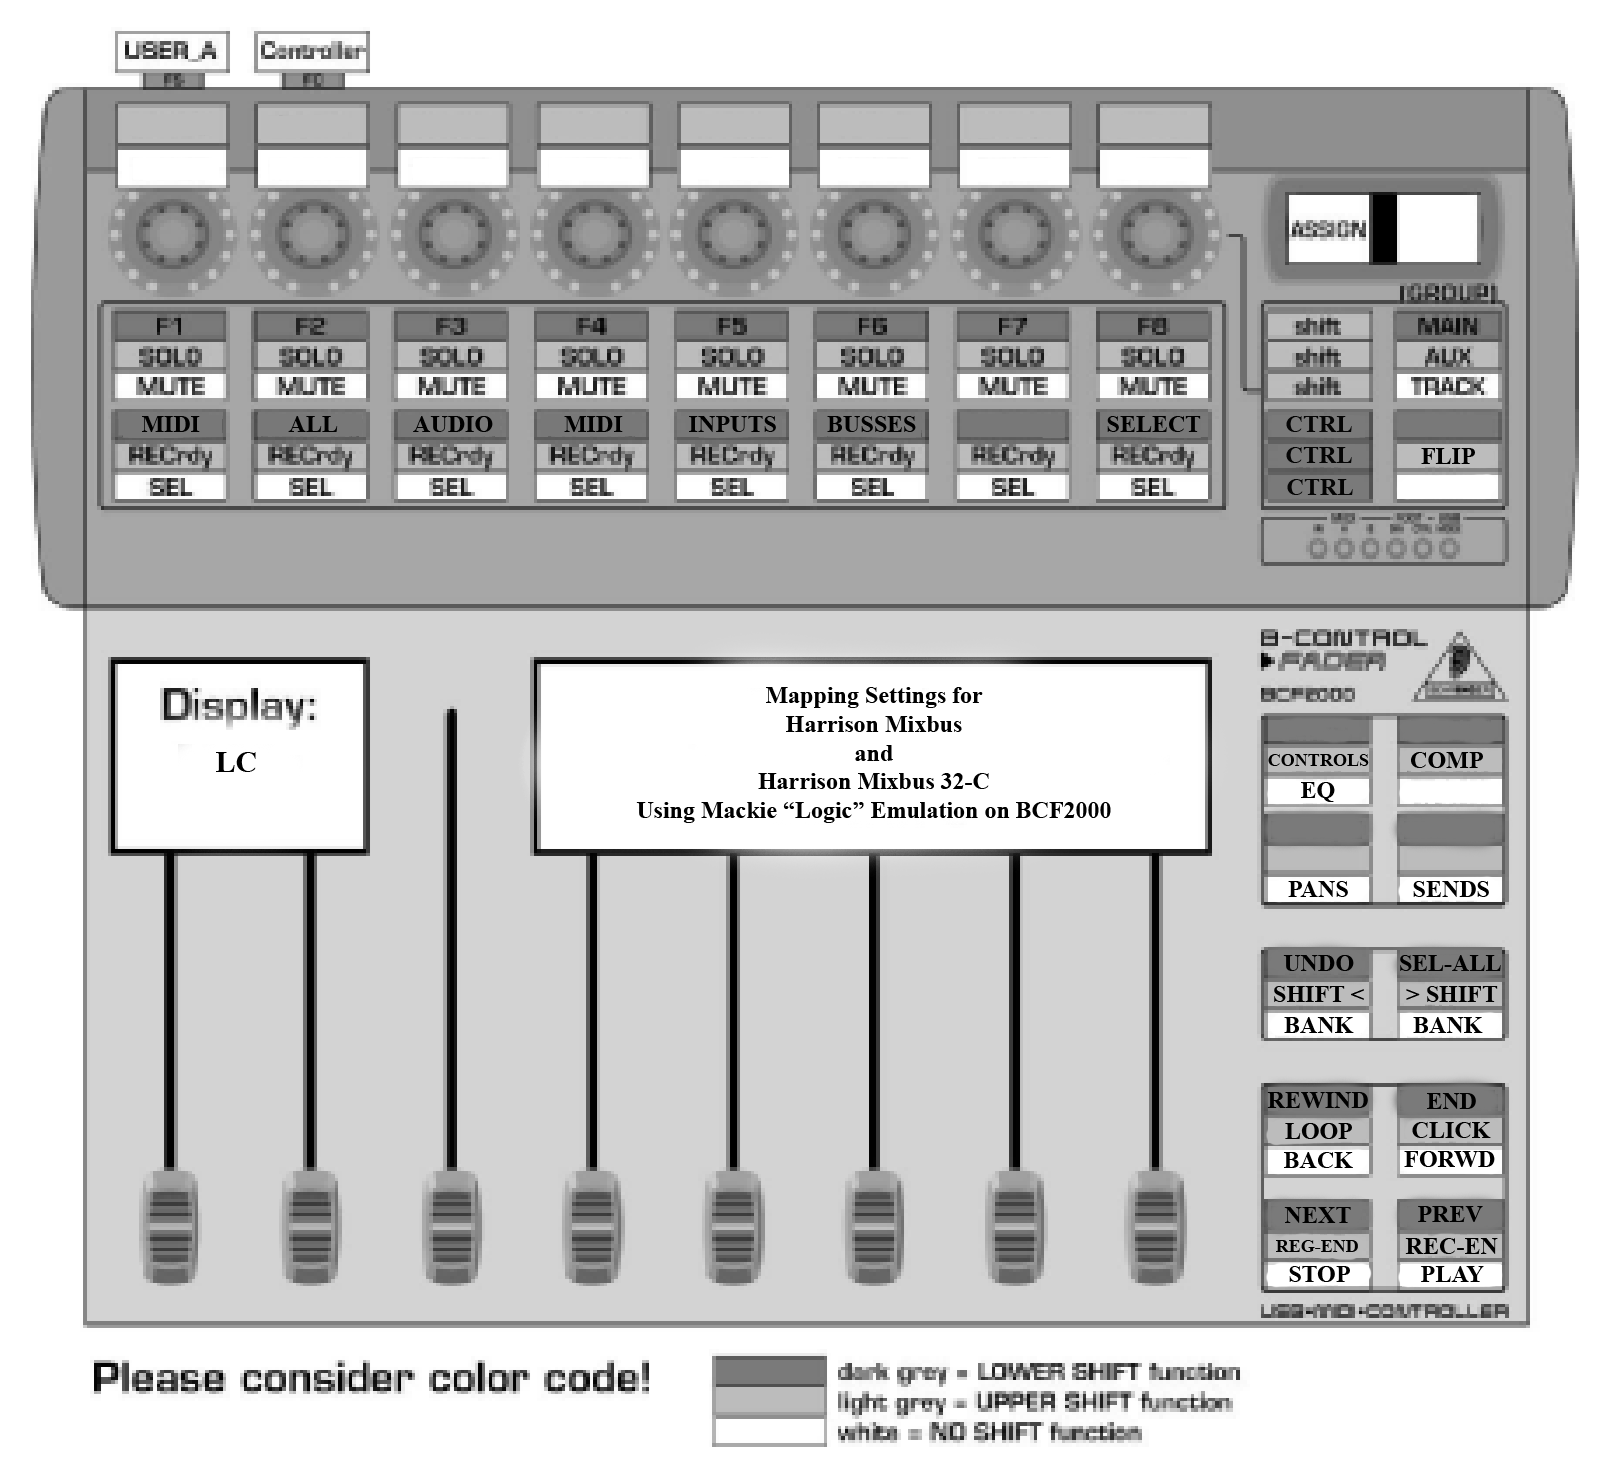 Behringer BCF2000 Controller with Mappings for Harrison Mixbus 4 and 32c